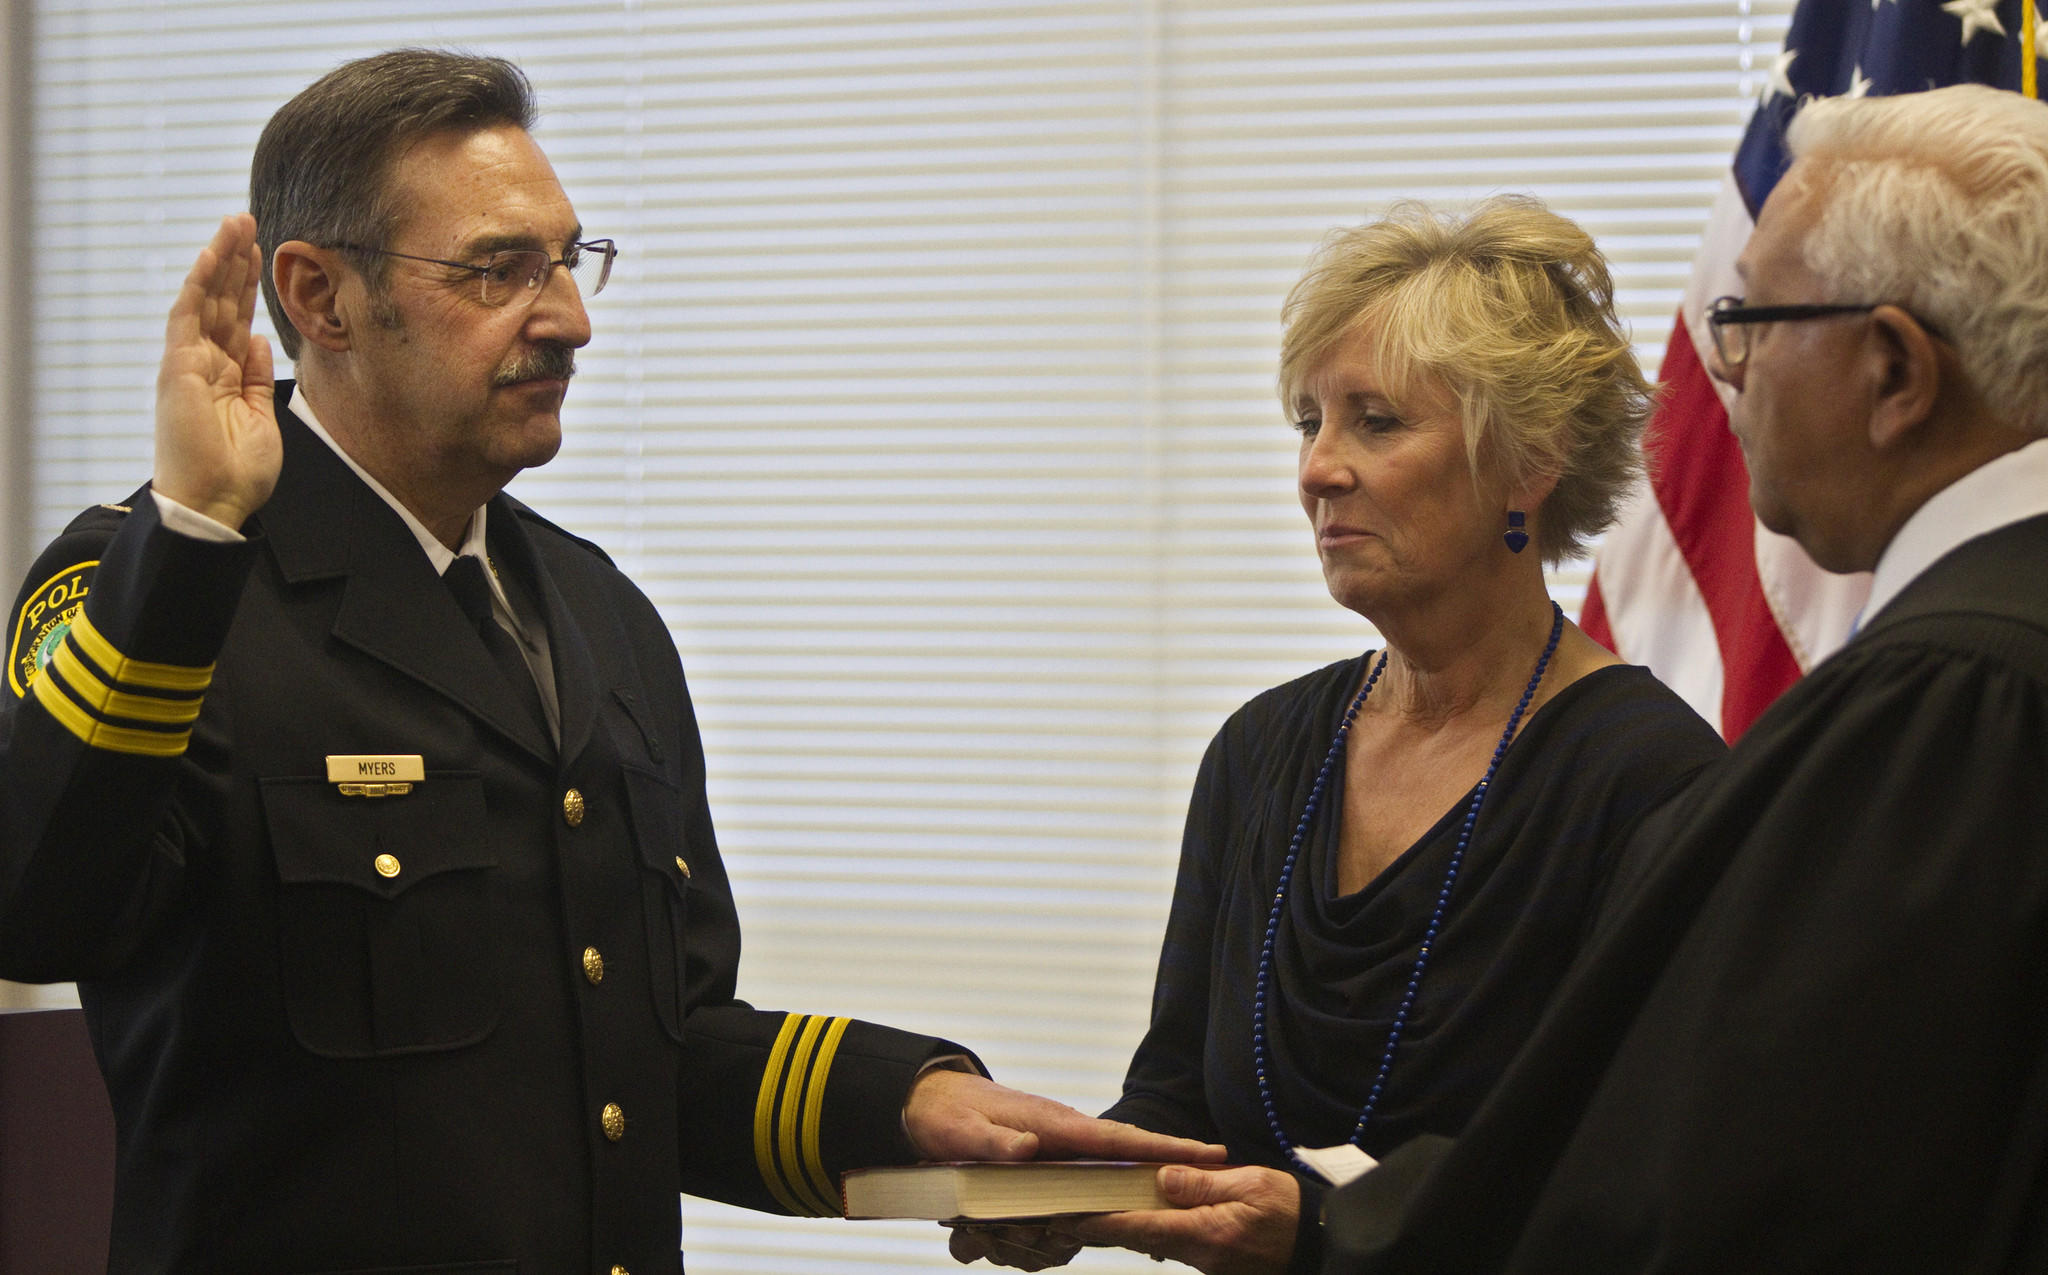 Newport News Chief of Police Richard W. Myers is sworn in by Judge David F. Pugh while his wife, Cindy Myers, looks on during a ceremony at police headquarters on Friday.